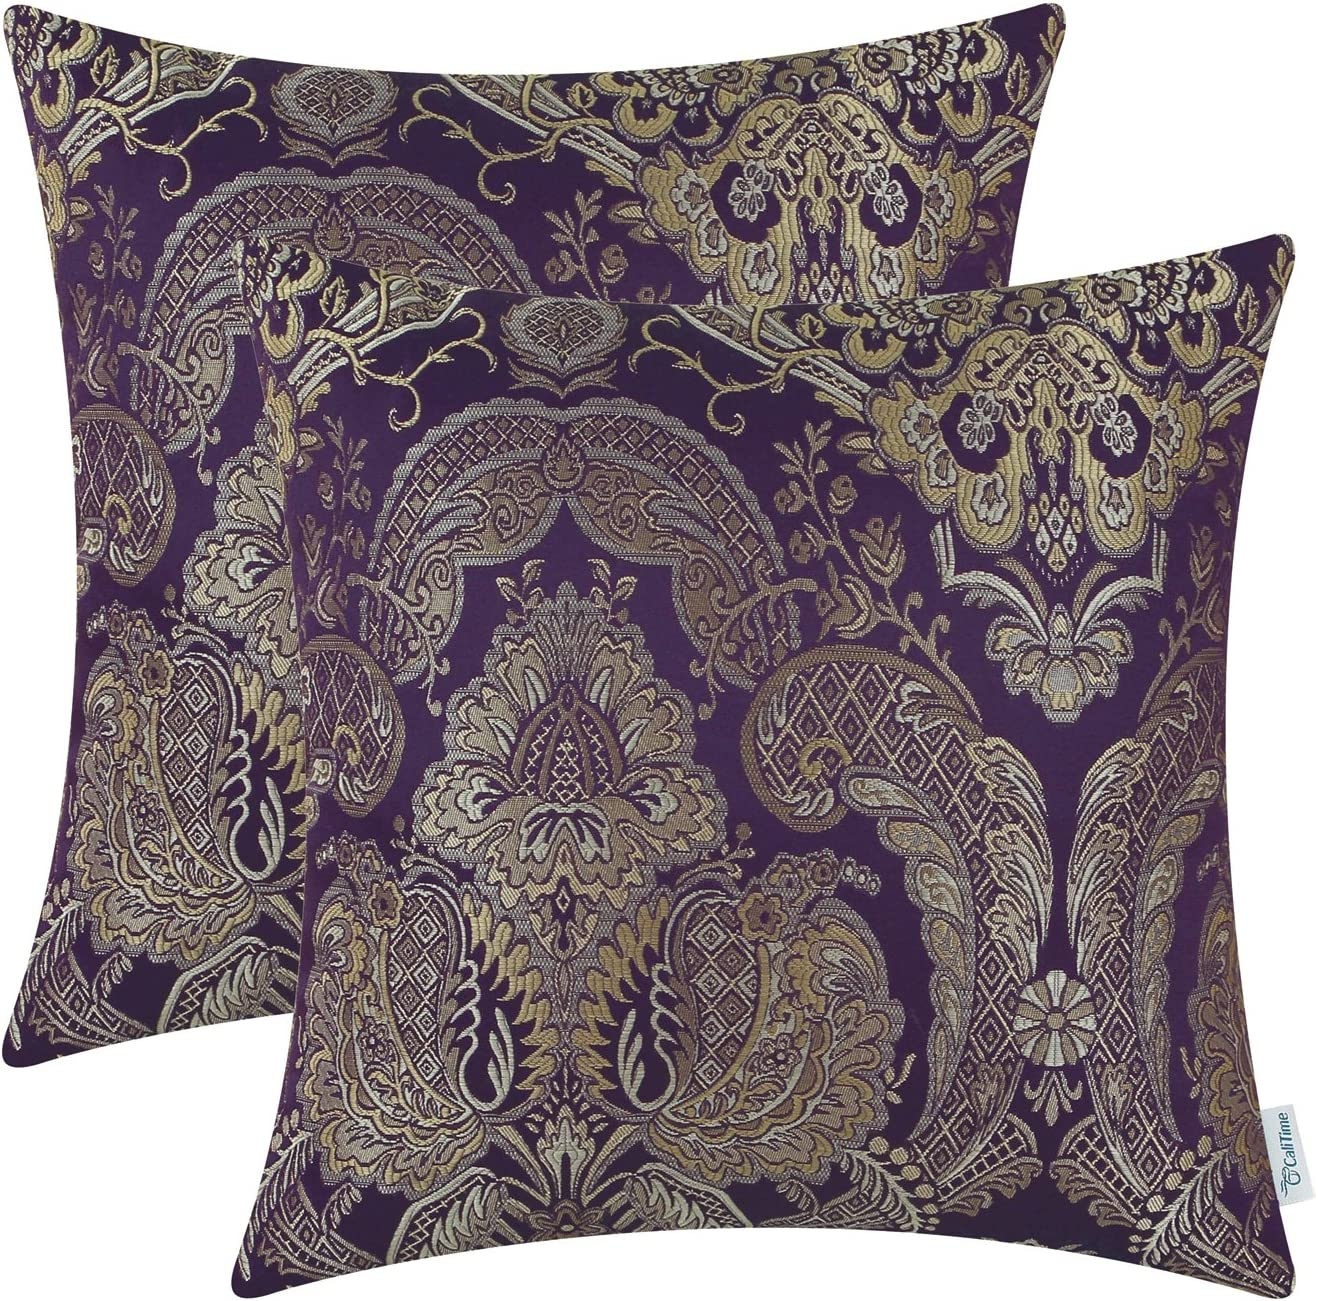 CaliTime Pack of 2 Supersoft Throw Pillow Covers Cases for Couch Sofa Home Decor Vintage Damask Floral 18 X 18 Inches Deep Purple